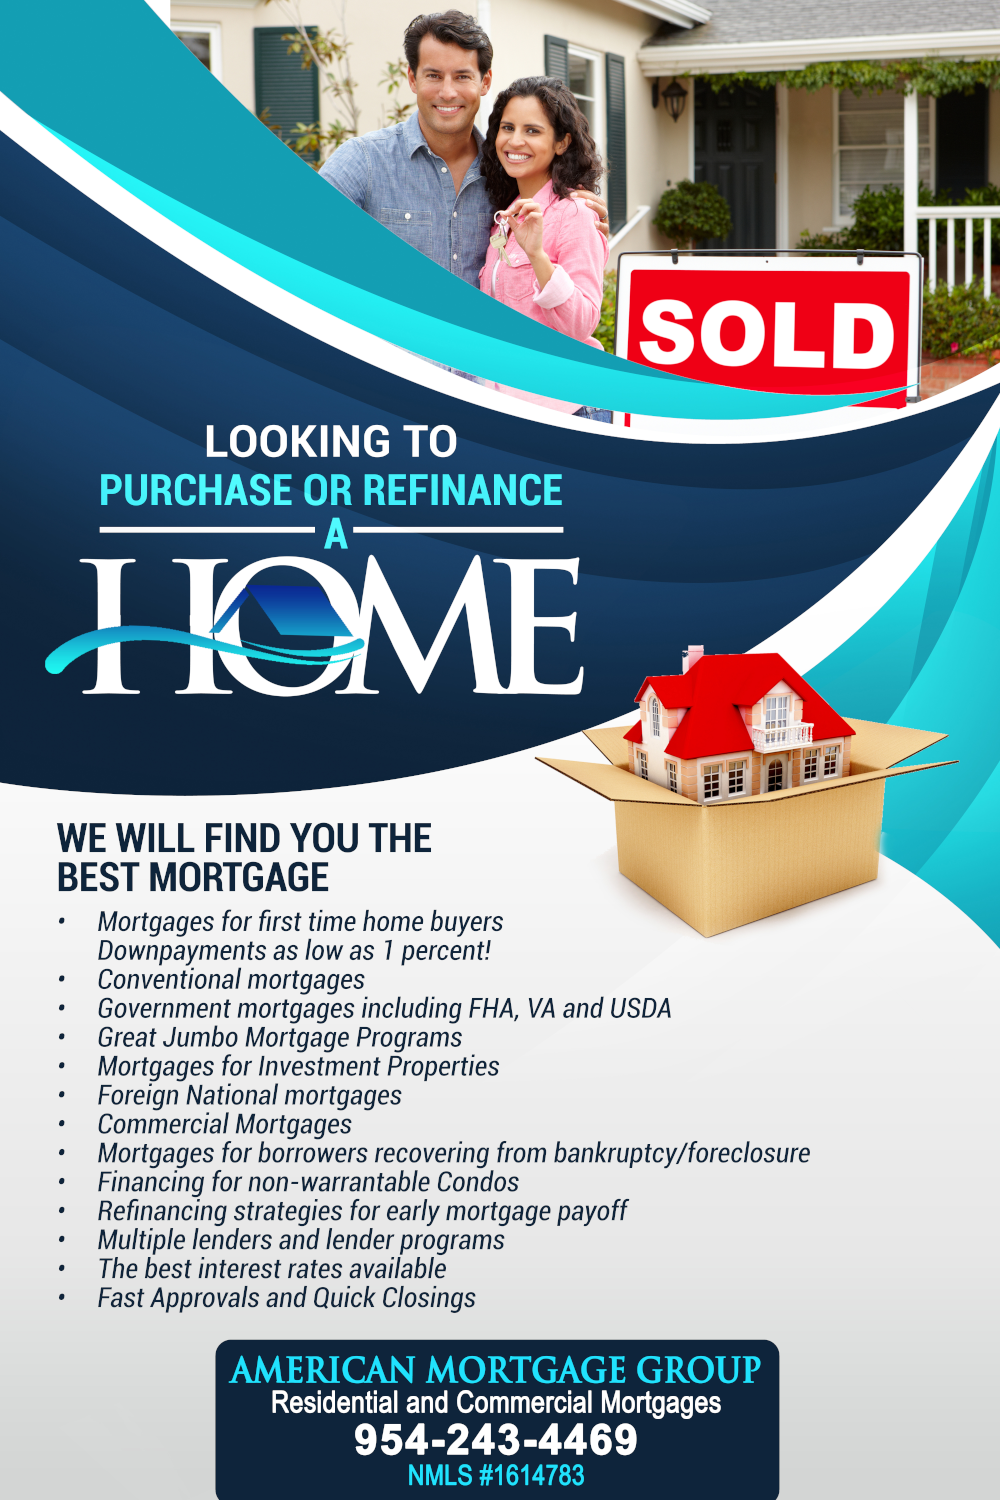 mortgage flyer_company